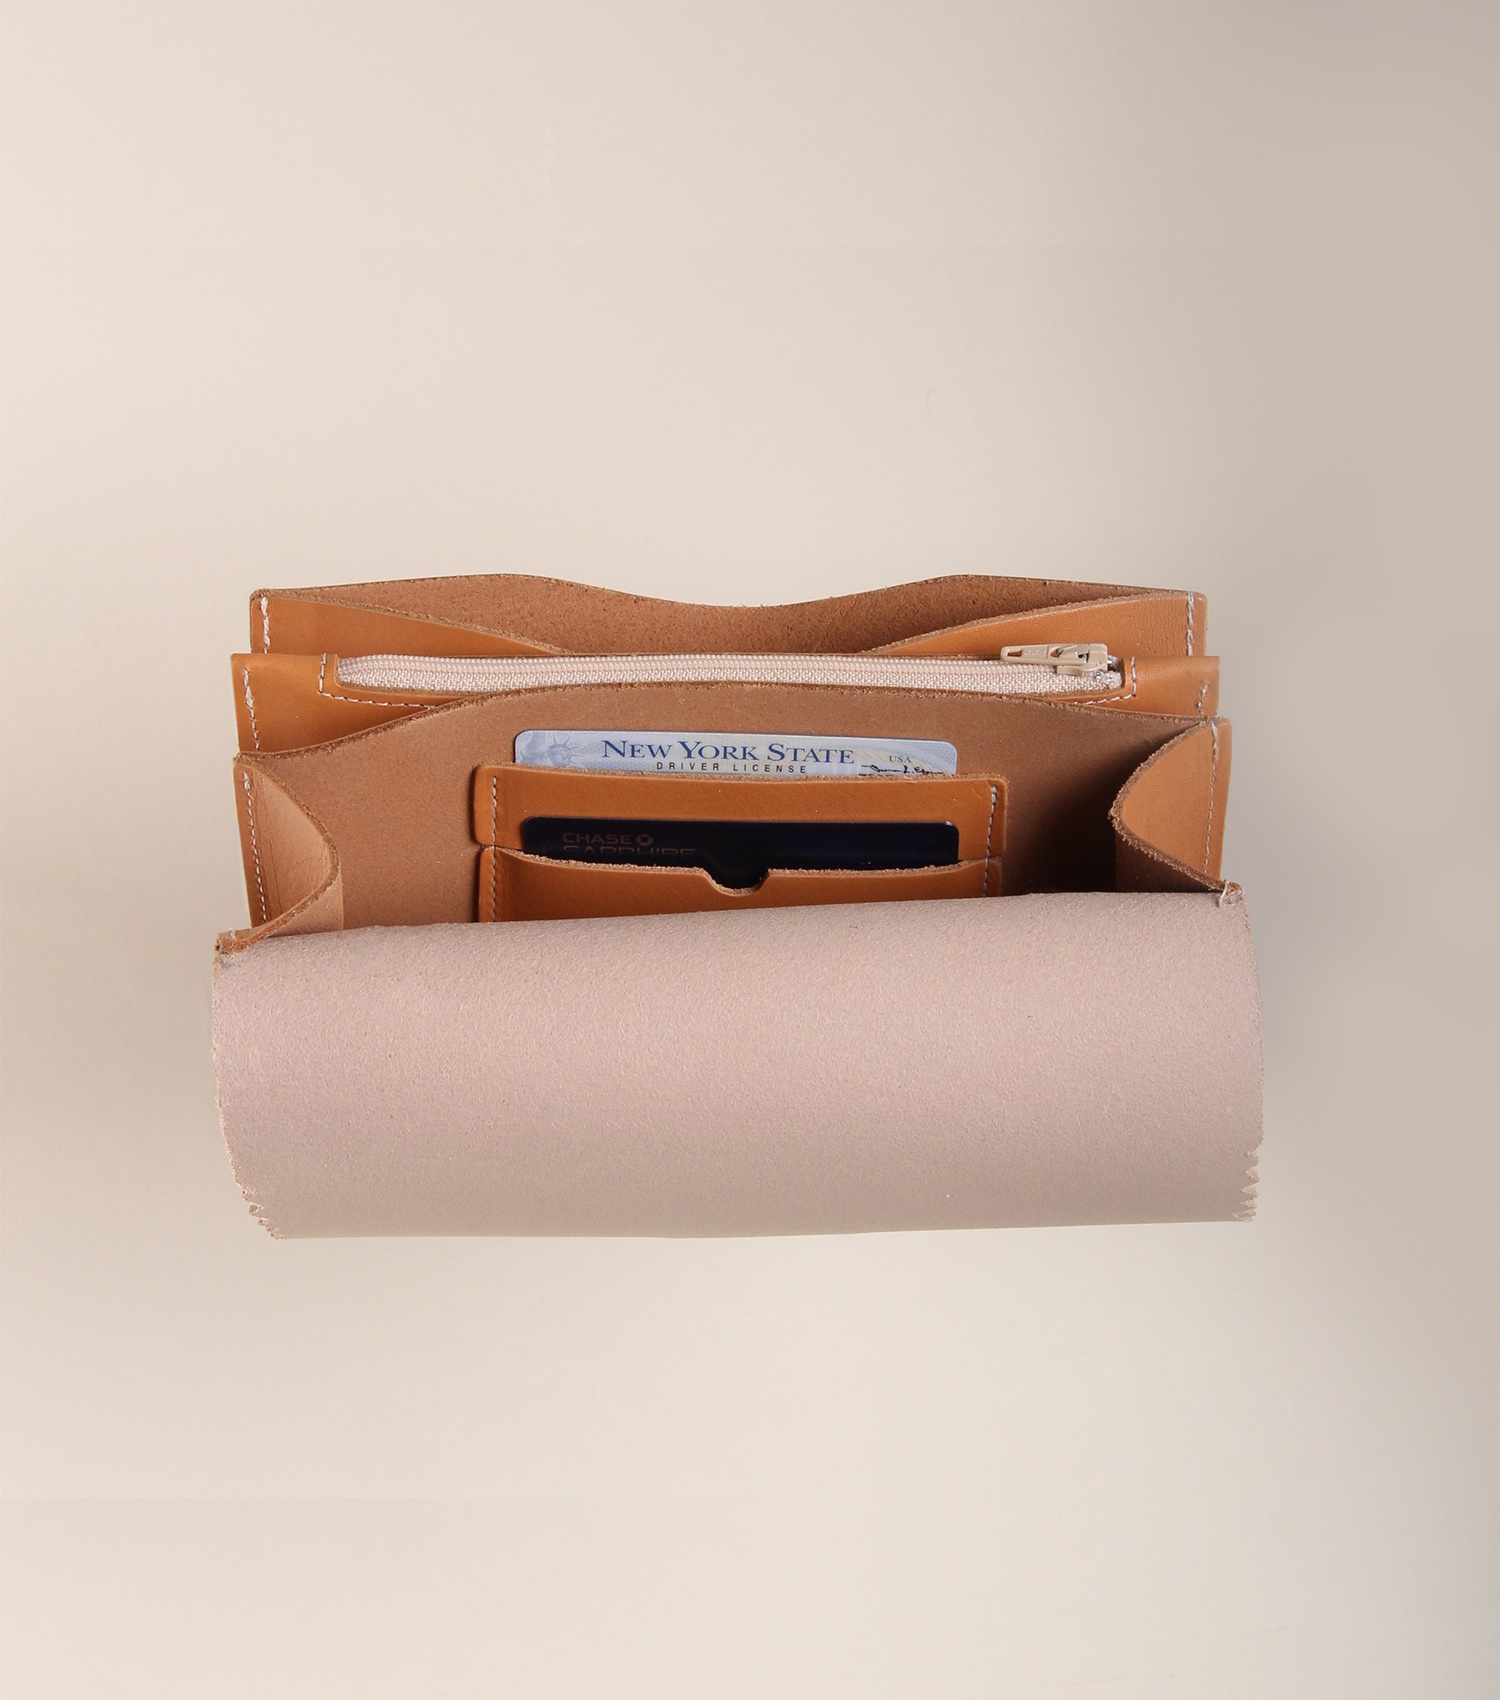 Fleabags Fleabags Accordion Waist Wallet in Blush and Tan Vaqueta Leather